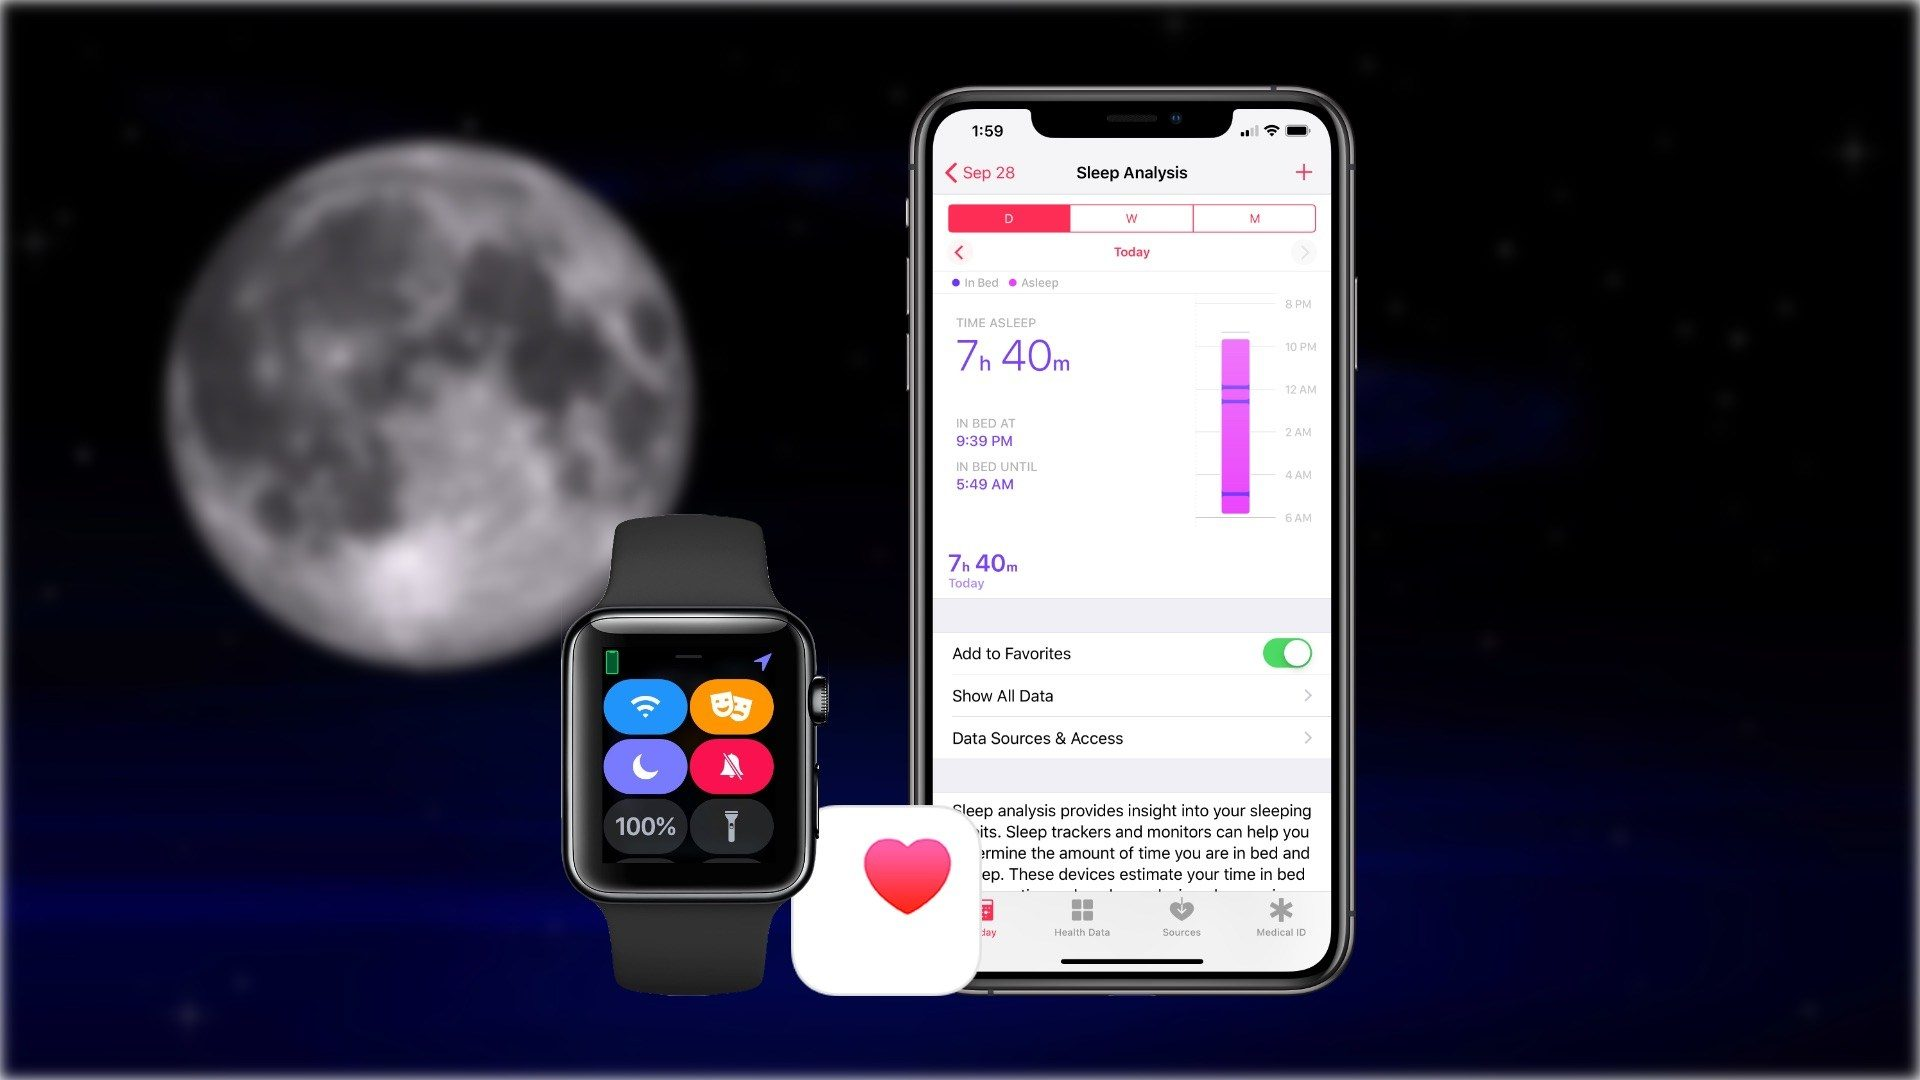 watchOS 6 features